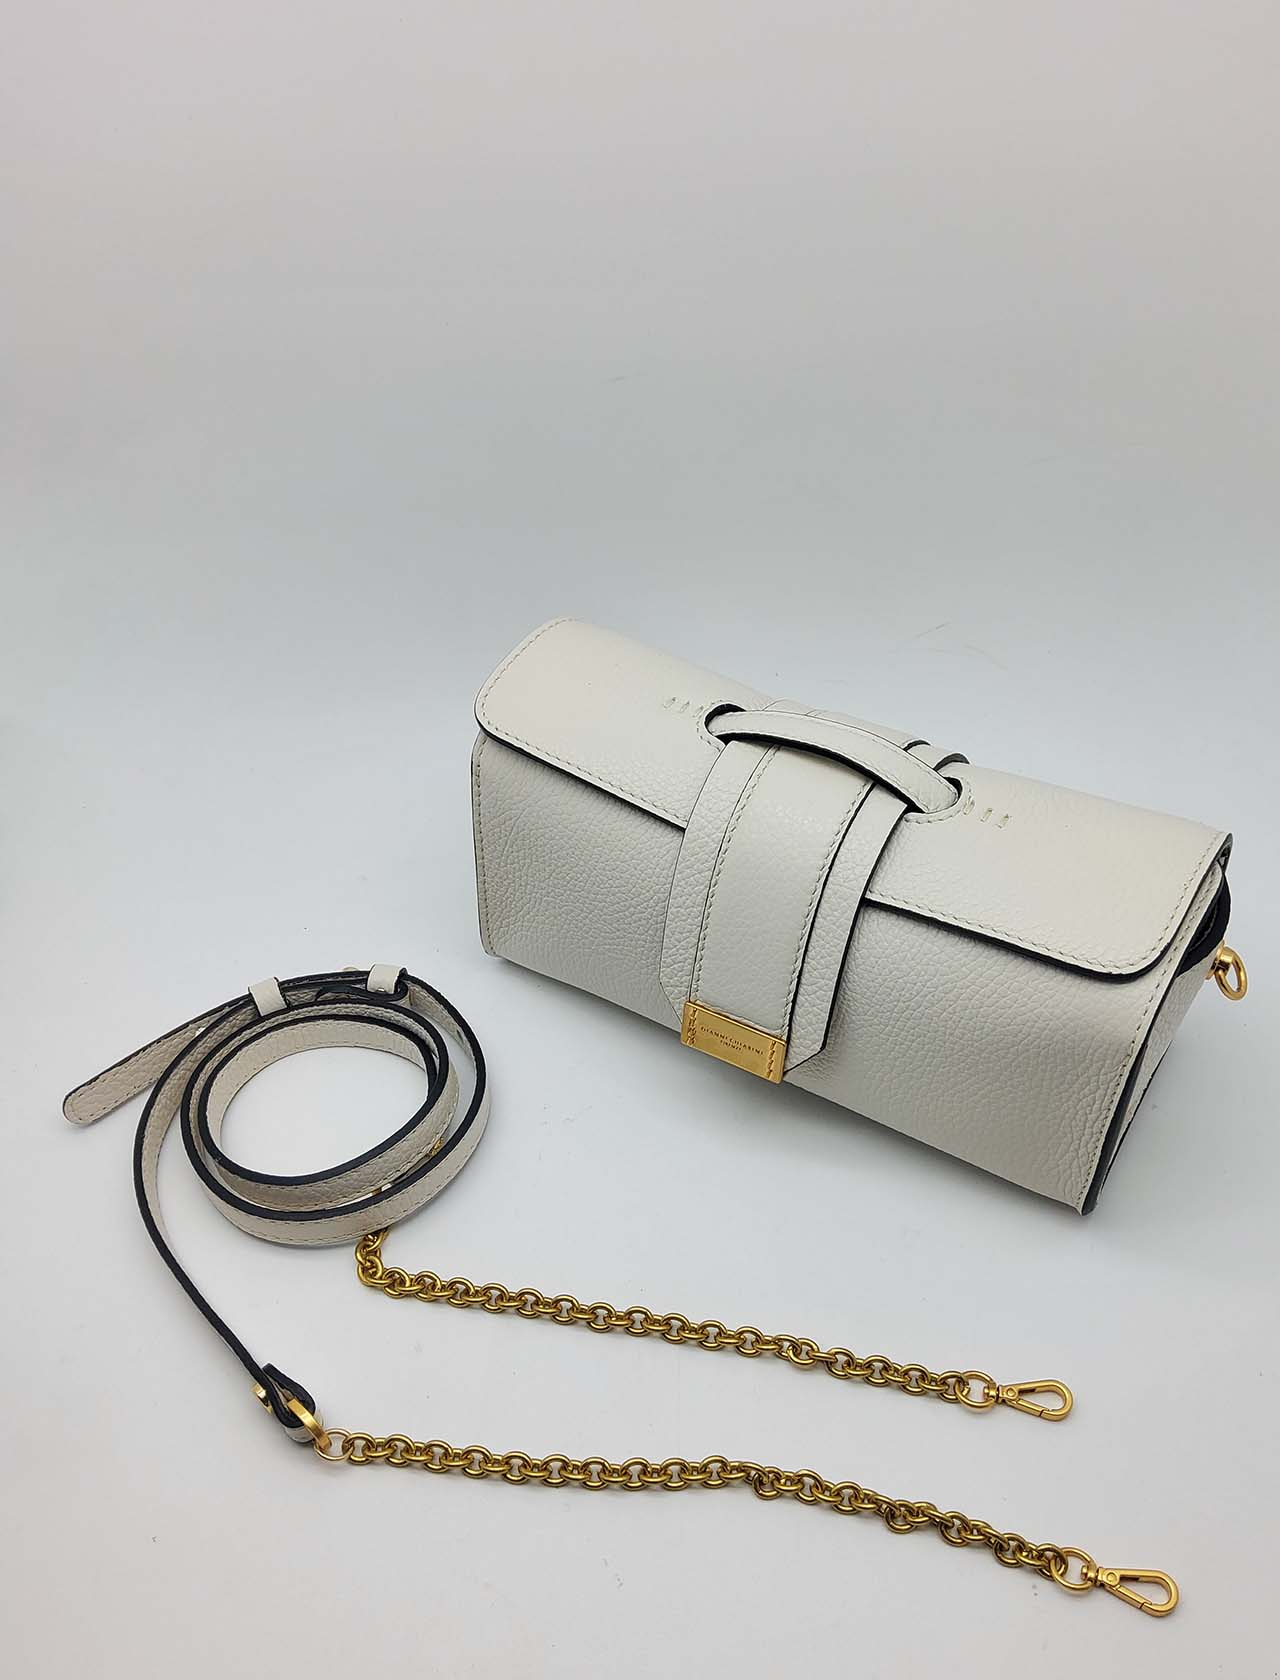 Gemma Shoulder Bag in Cream Leather with Shoulder Strap in Gold Chain and Matching Leather Gianni Chiarini | Bags and backpacks | BS84913890